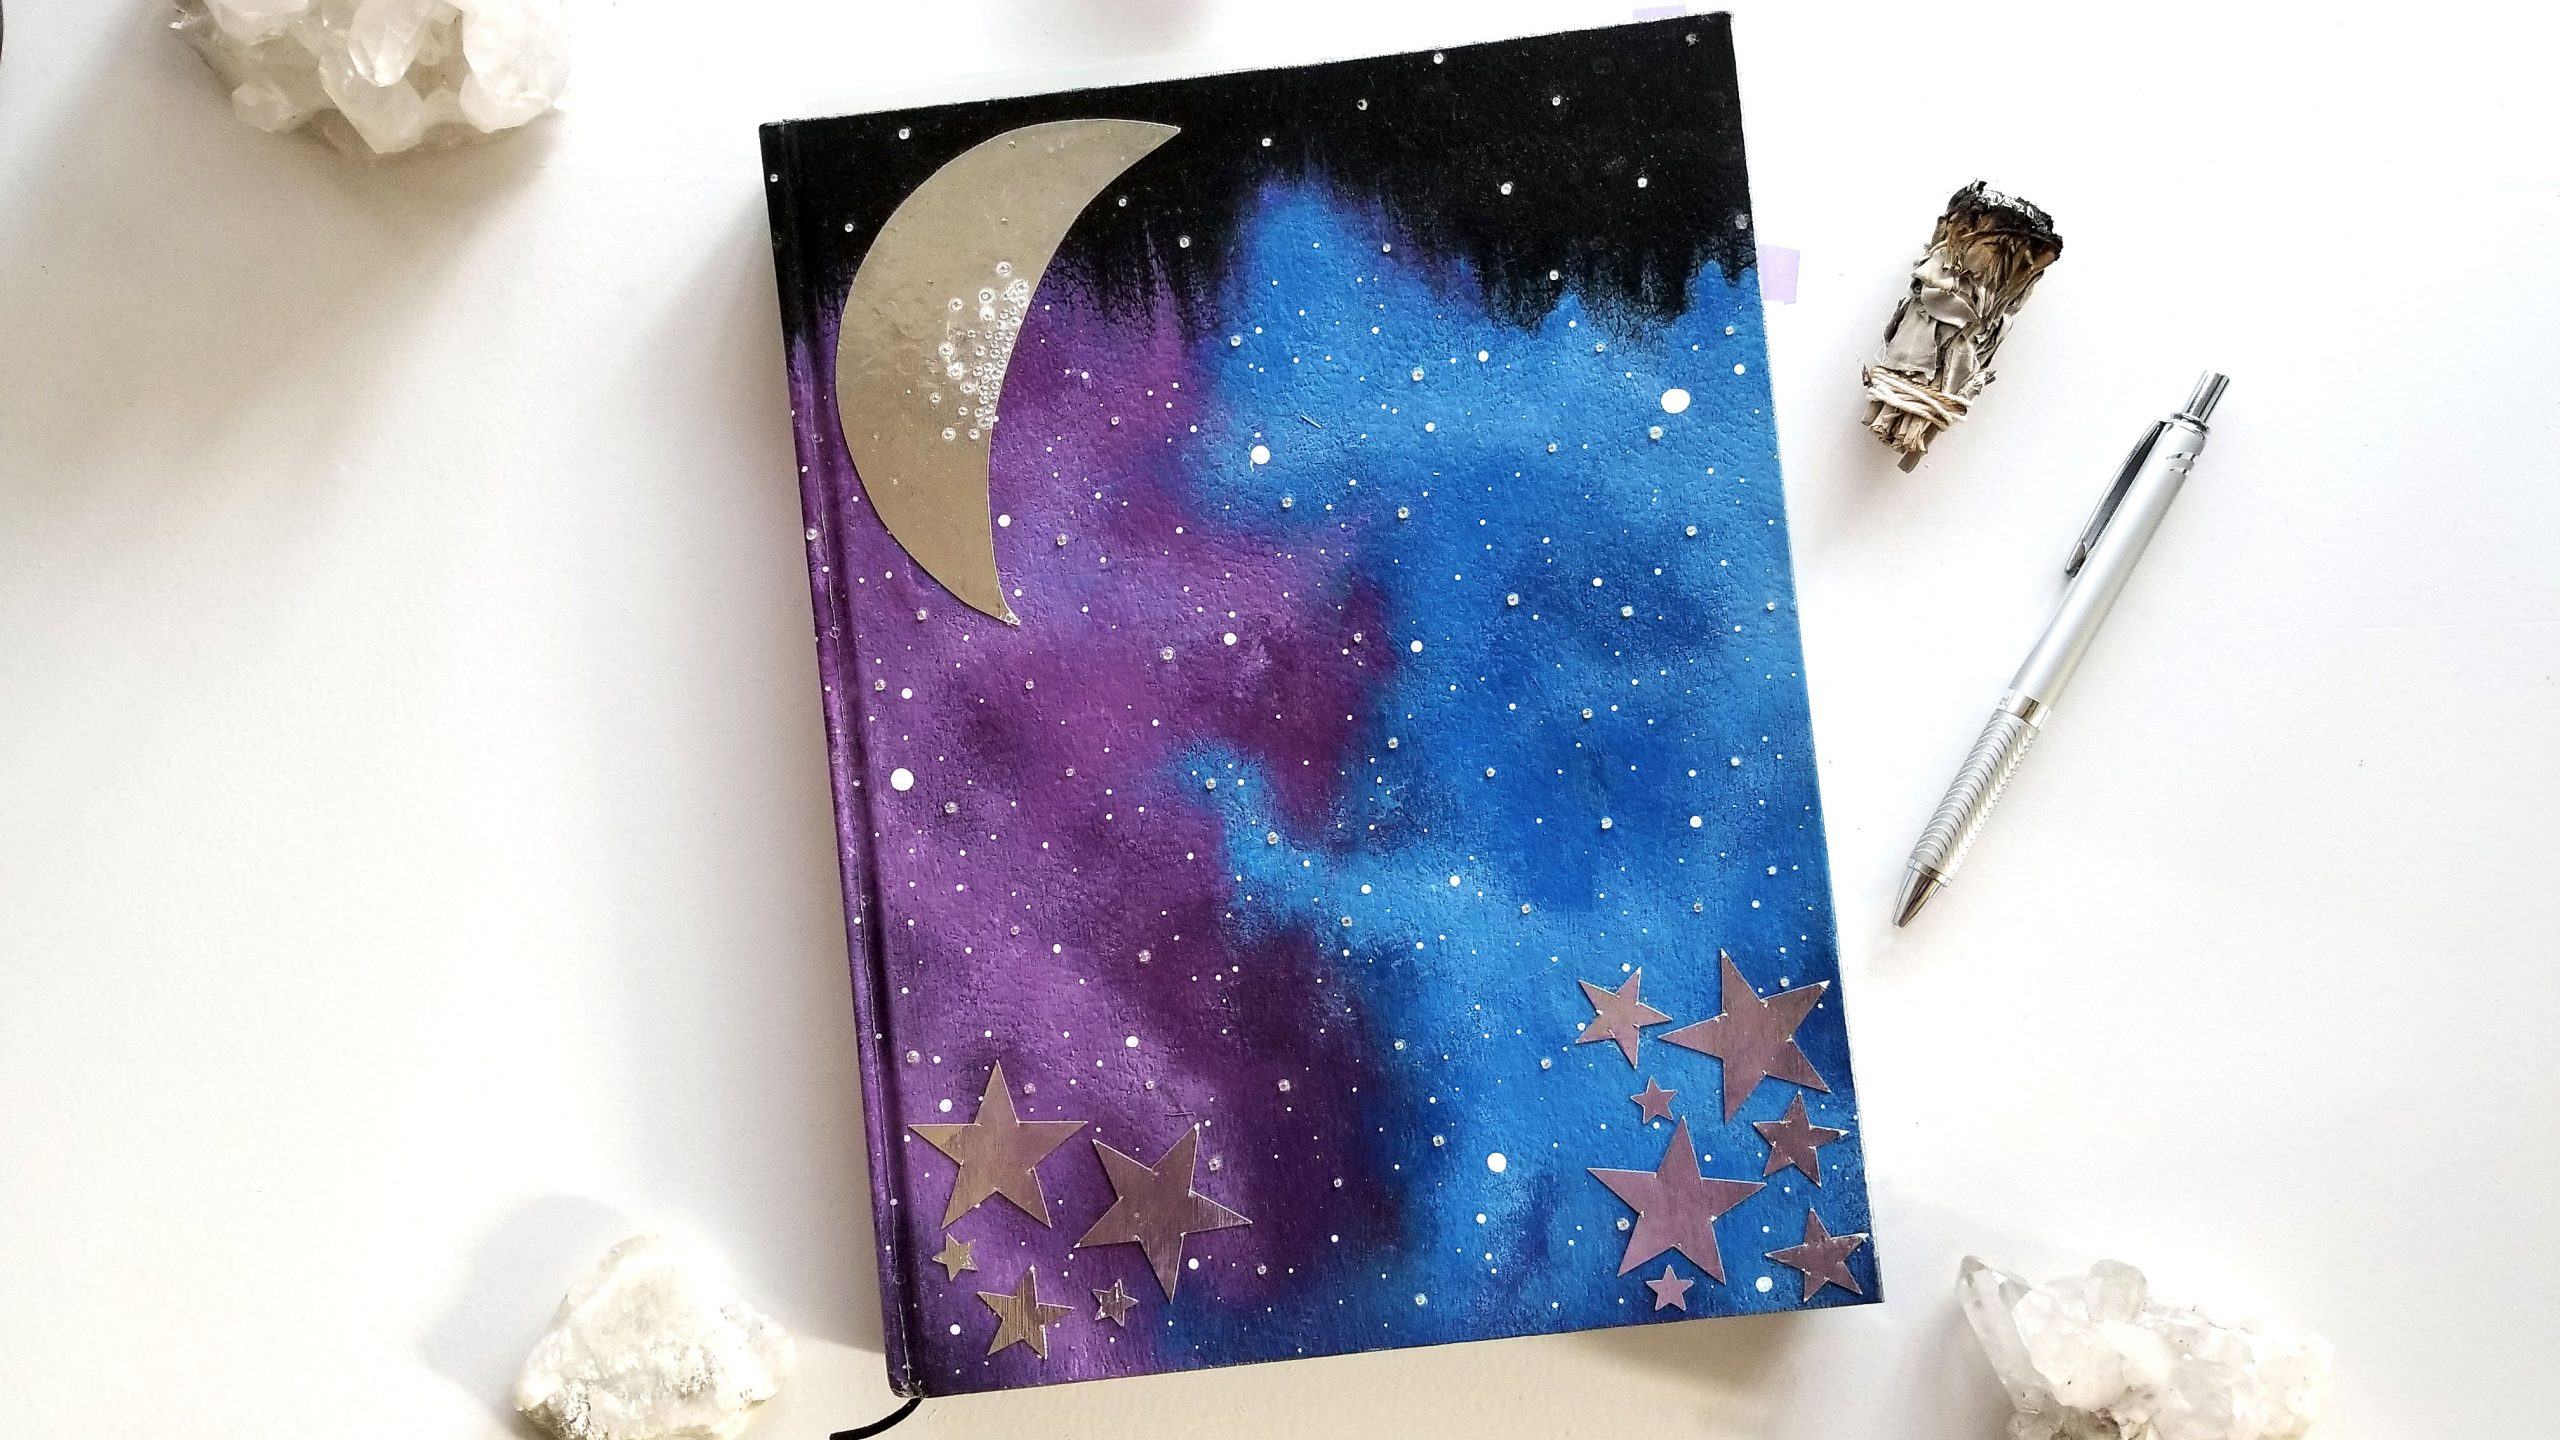 witch-galaxy-journal-with-silver-crescent-moon-and-rhinestones-surrounded-by-crystals